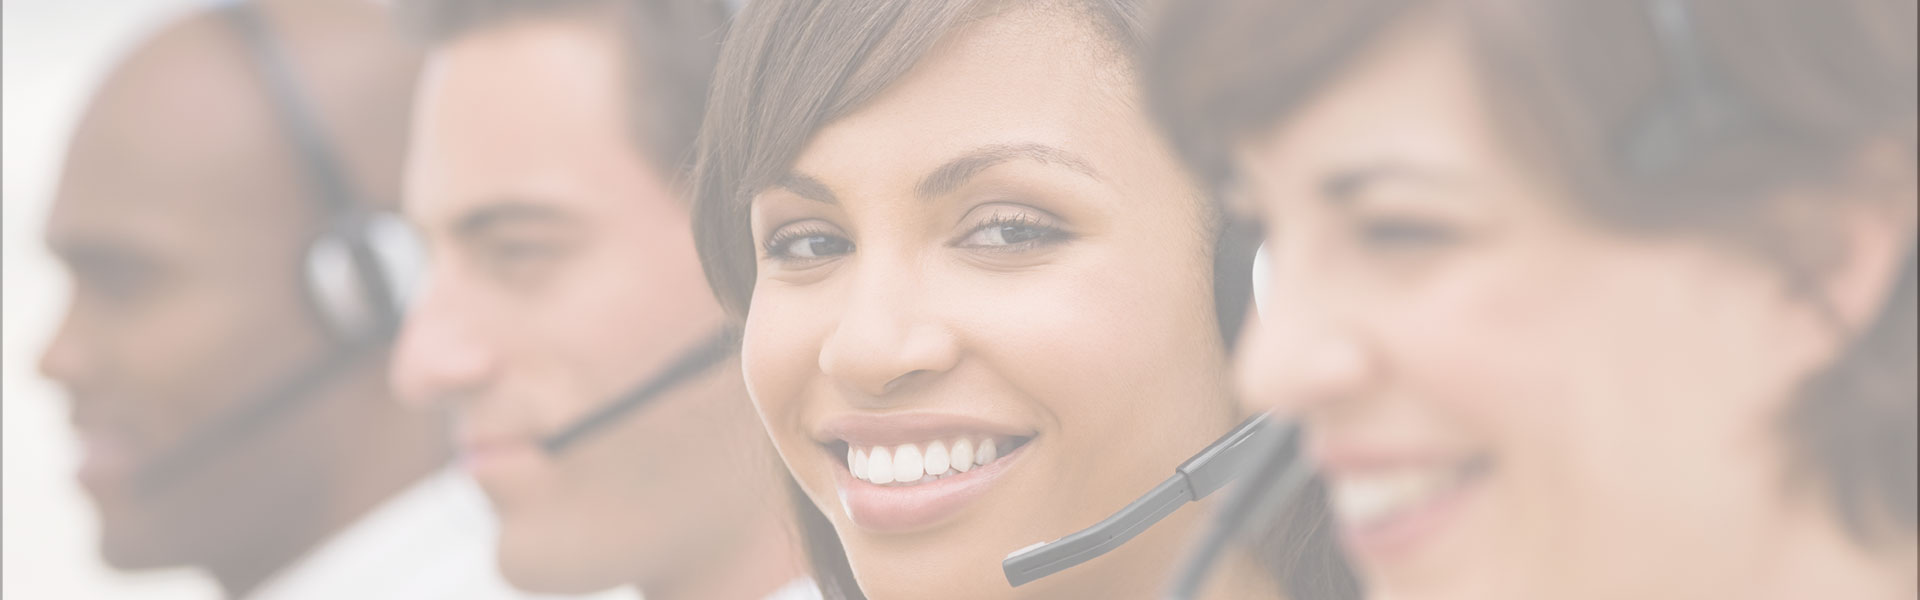 Answering service Jacksonville